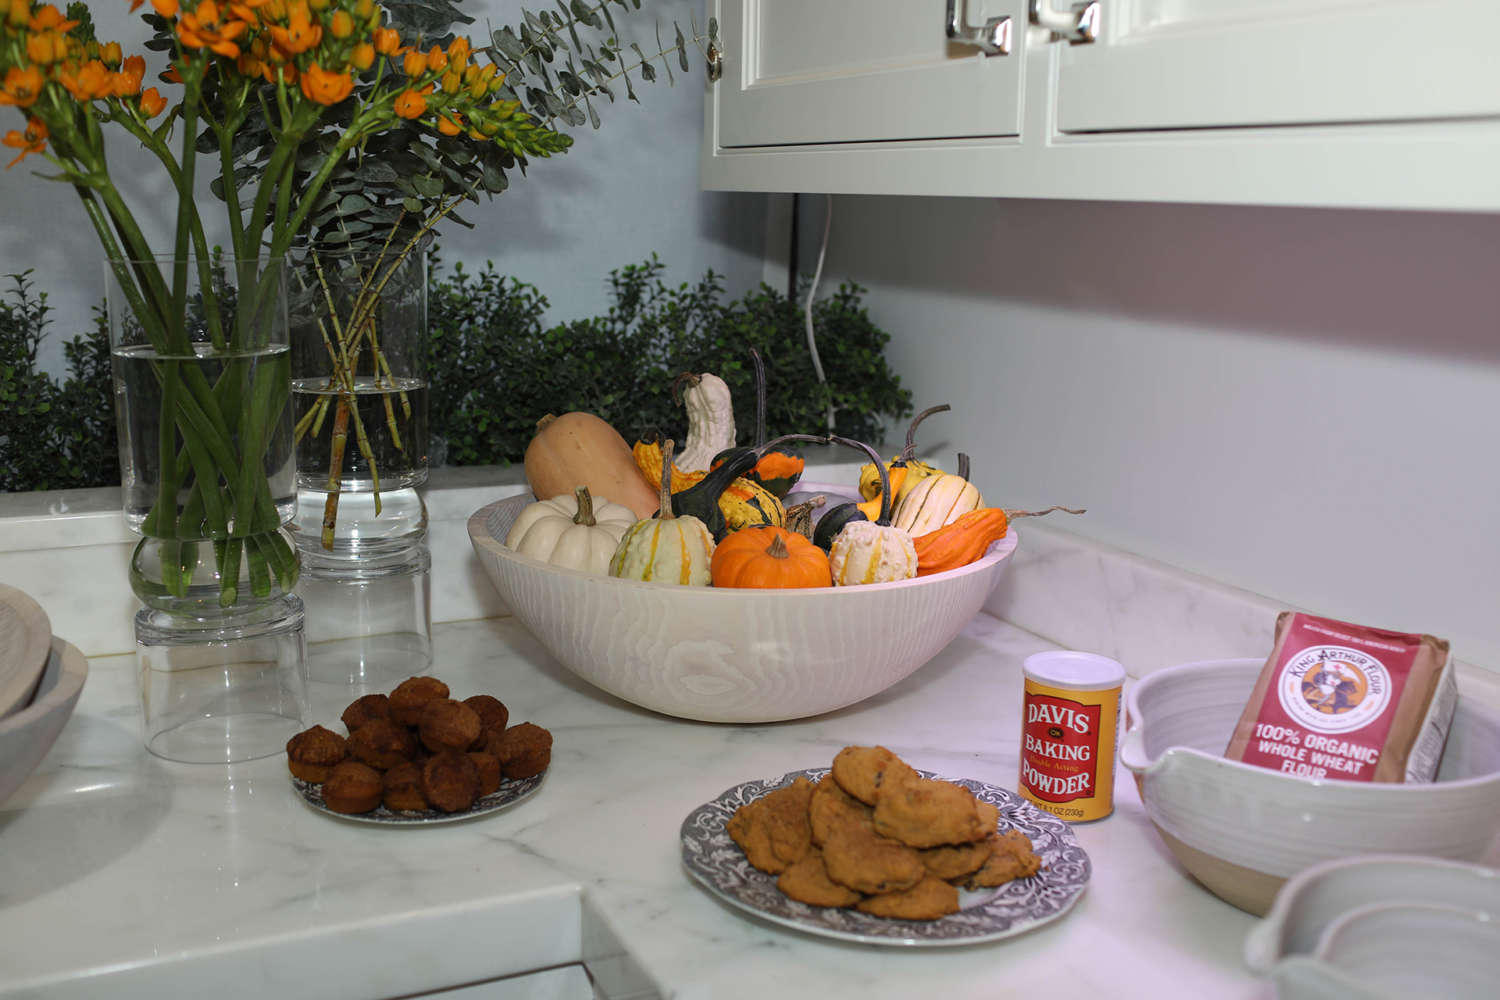 Plates of cookies and white bowls filled with mini pumpkins and gourds.